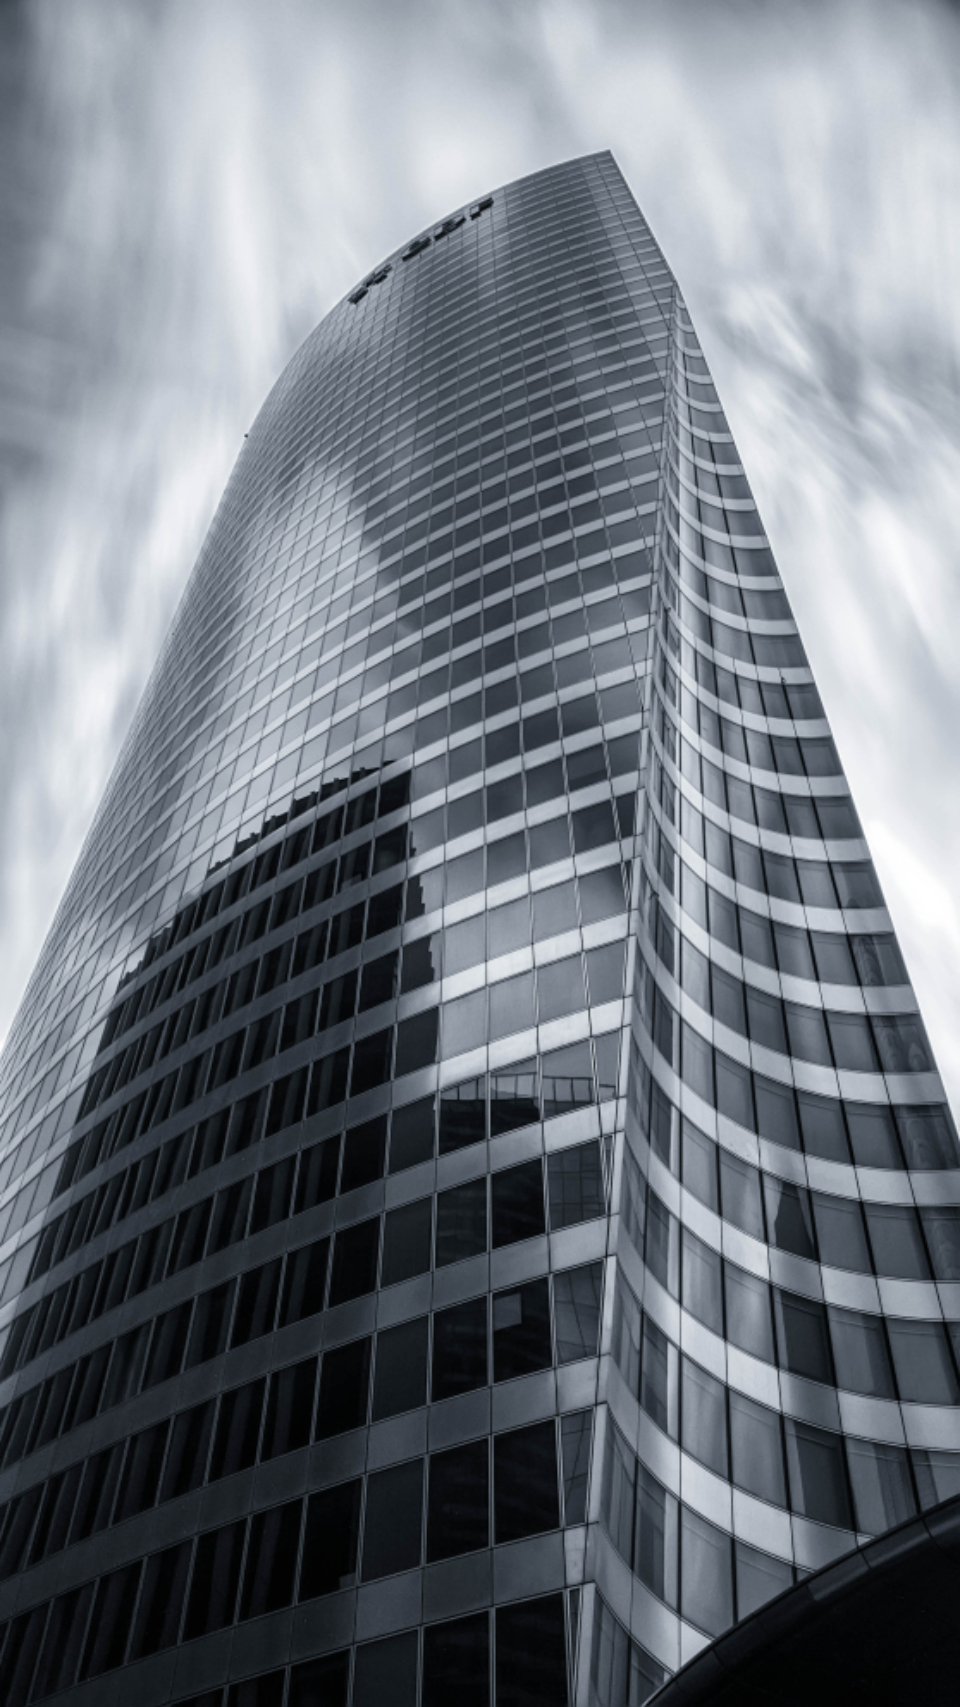 skyscaper office building city building tall downtown architecture monochromatic reflection modern downtown urban glass building exterior